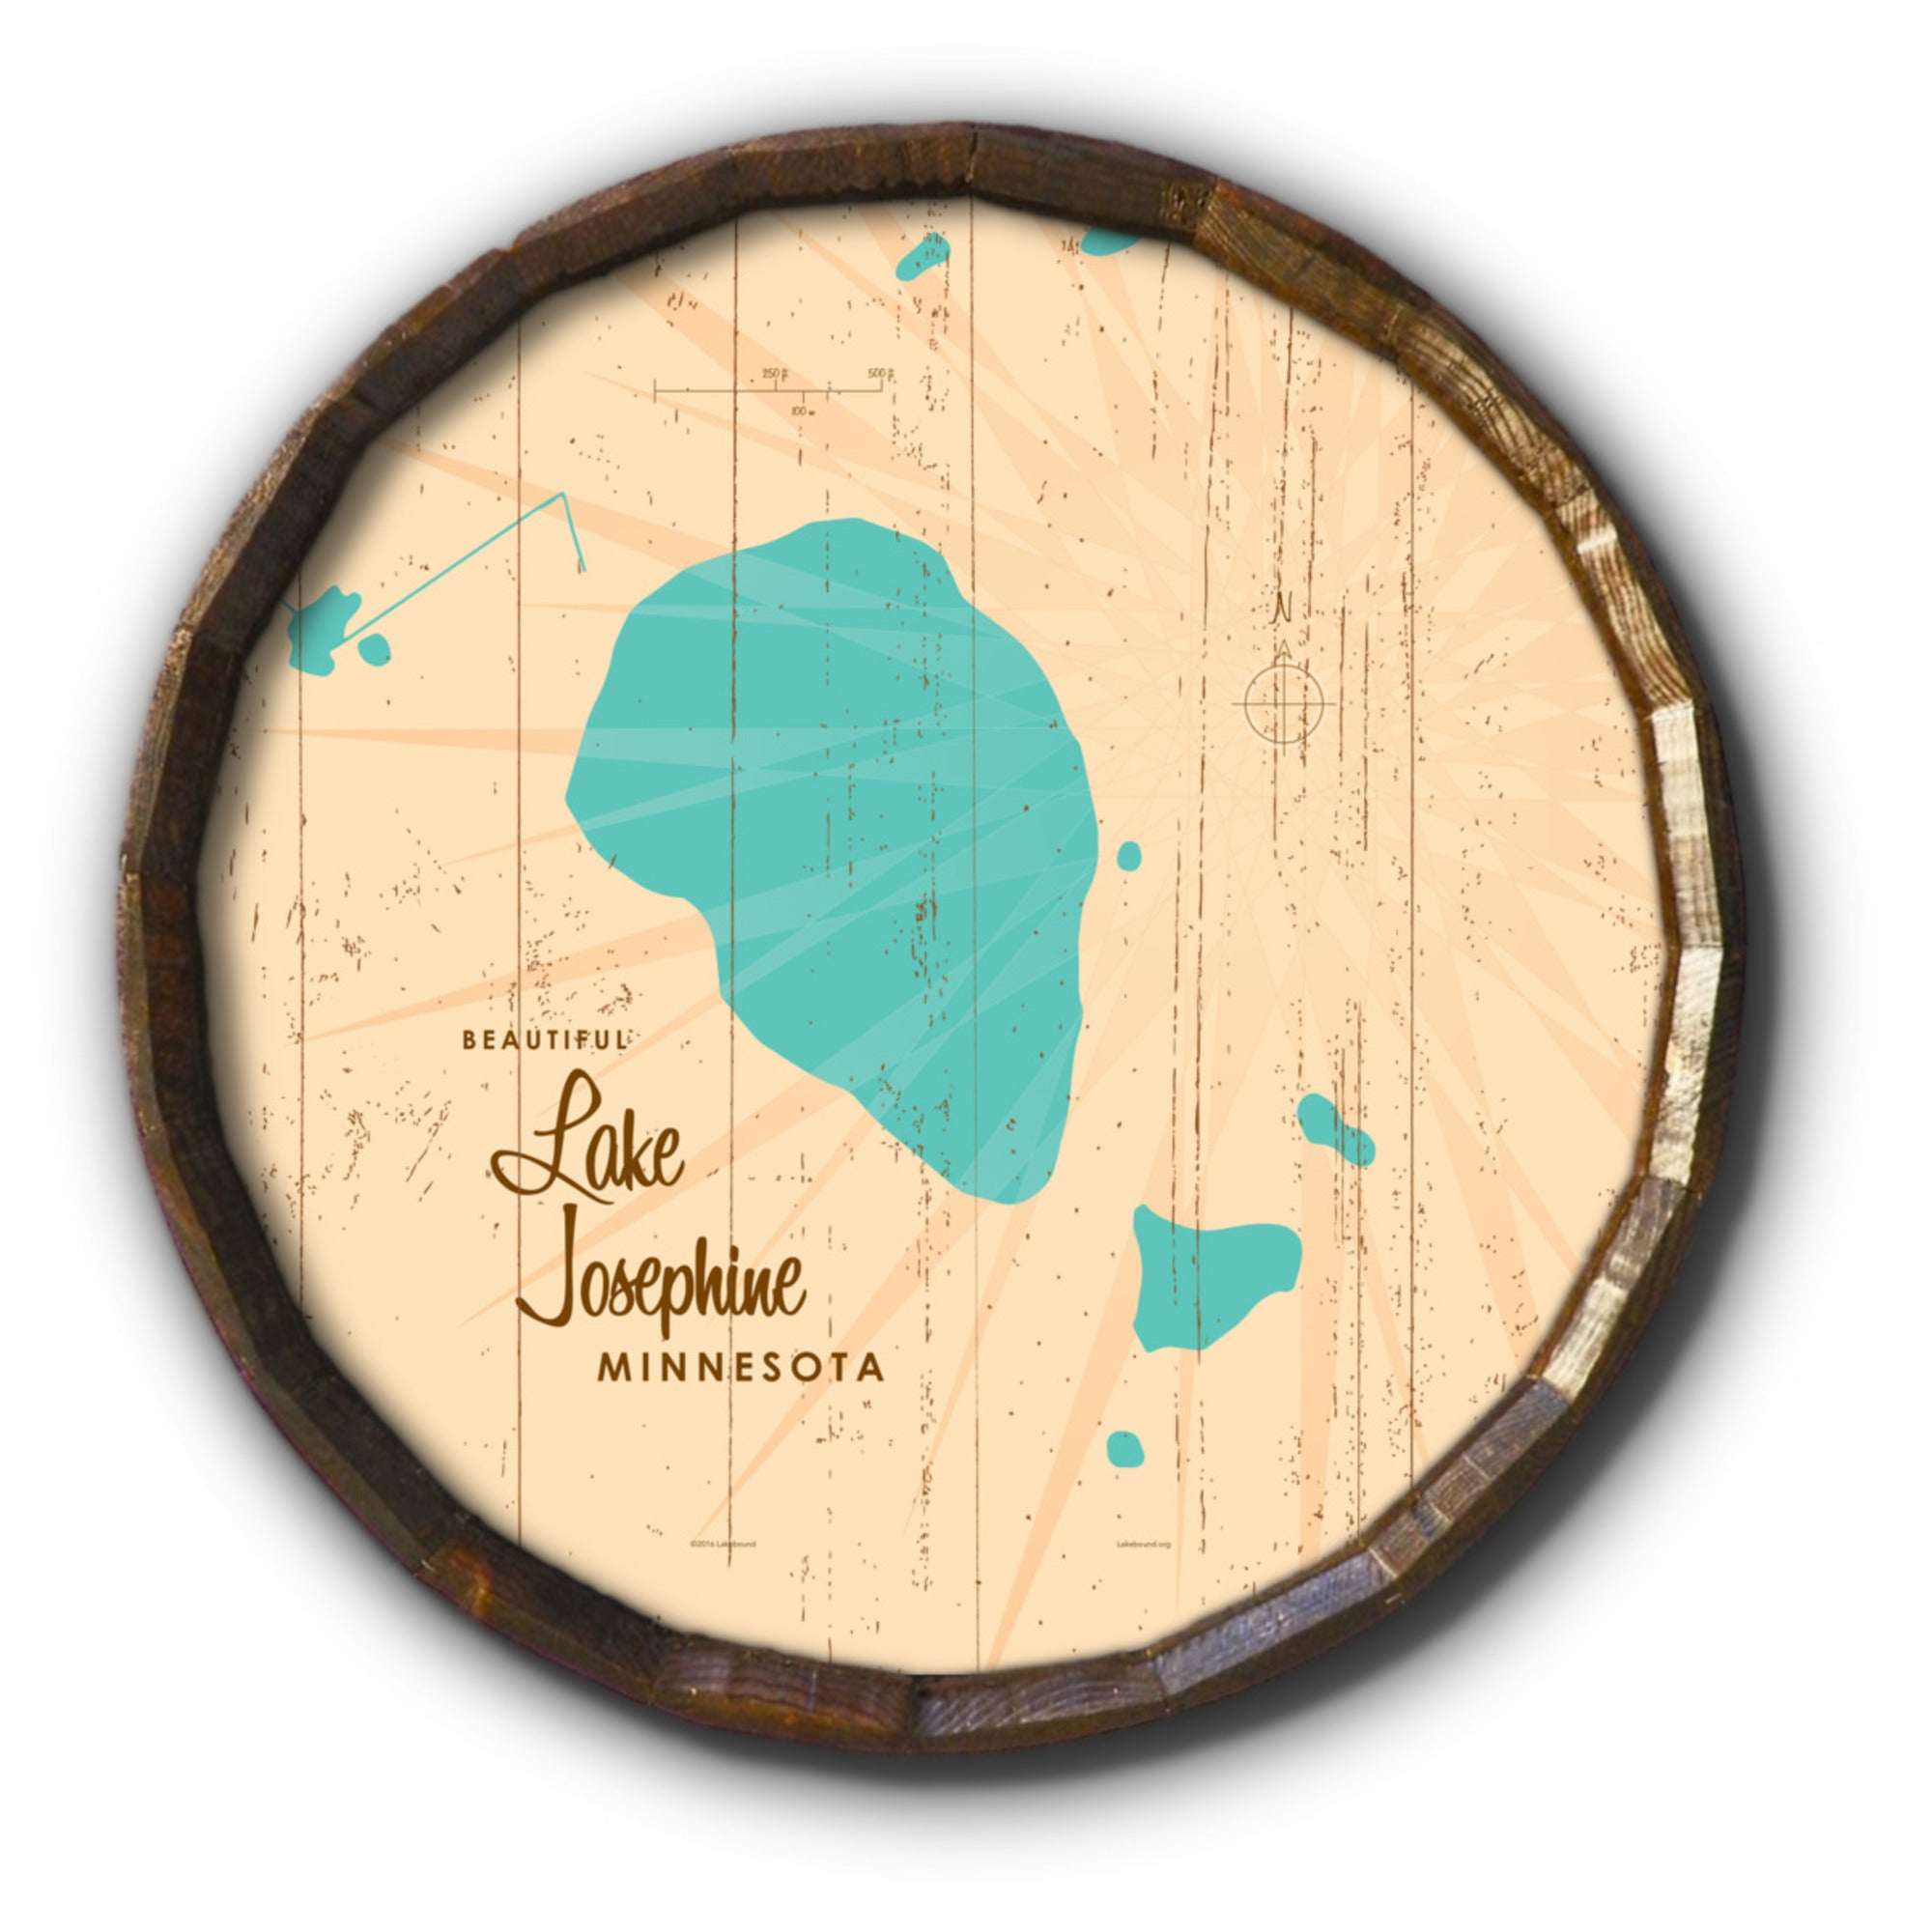 Lake Josephine Minnesota, Rustic Barrel End Map Art